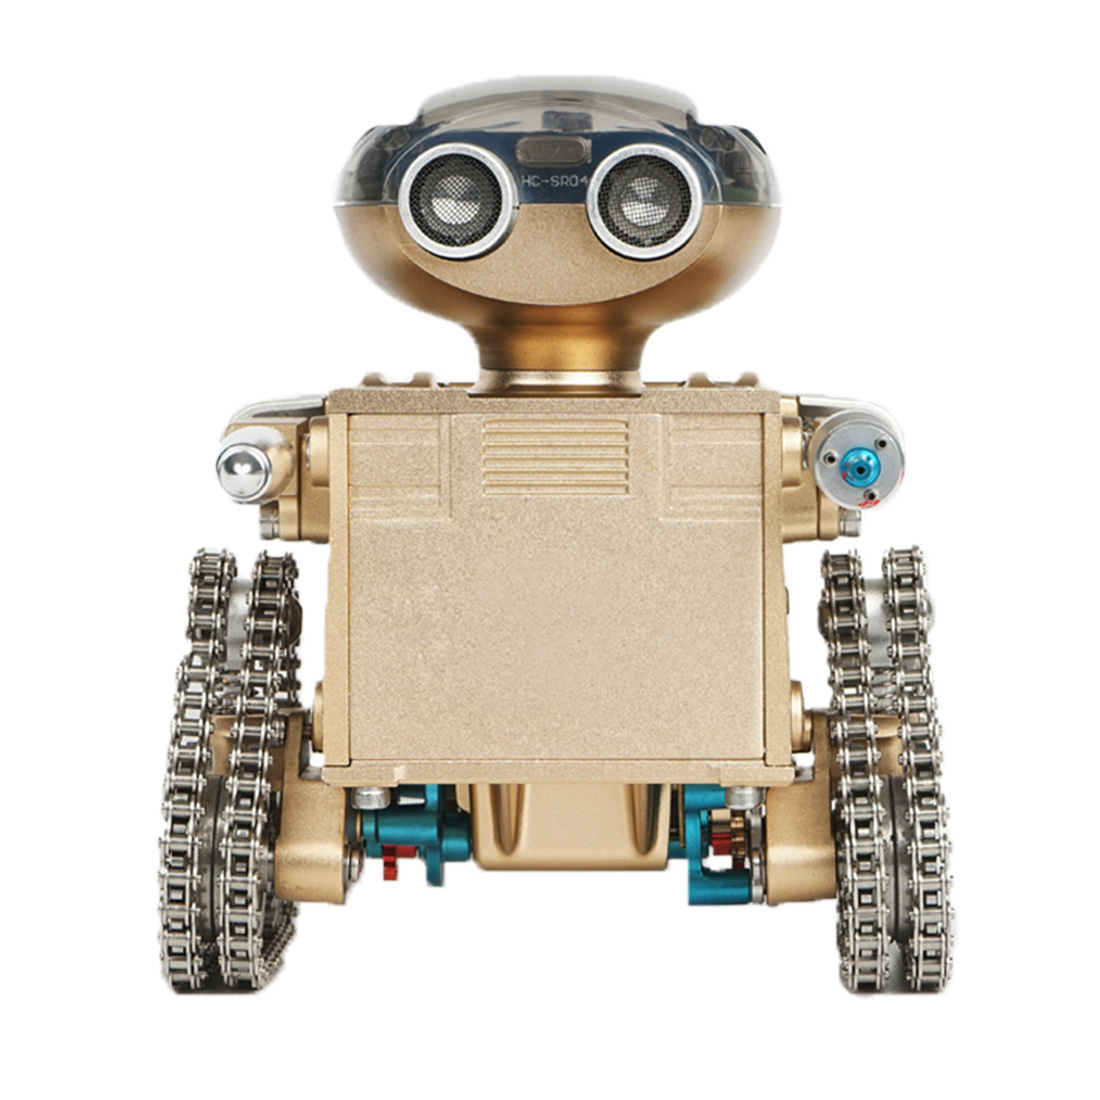 Metal Intelligent Remote Control Robot Assembling Educational Model Toy DIY Gift For Boys Kids Children Adults Gifts 2019Metal Intelligent Remote Control Robot Assembling Educational Model Toy DIY Gift For Boys Kids Children Adults Gifts 2019